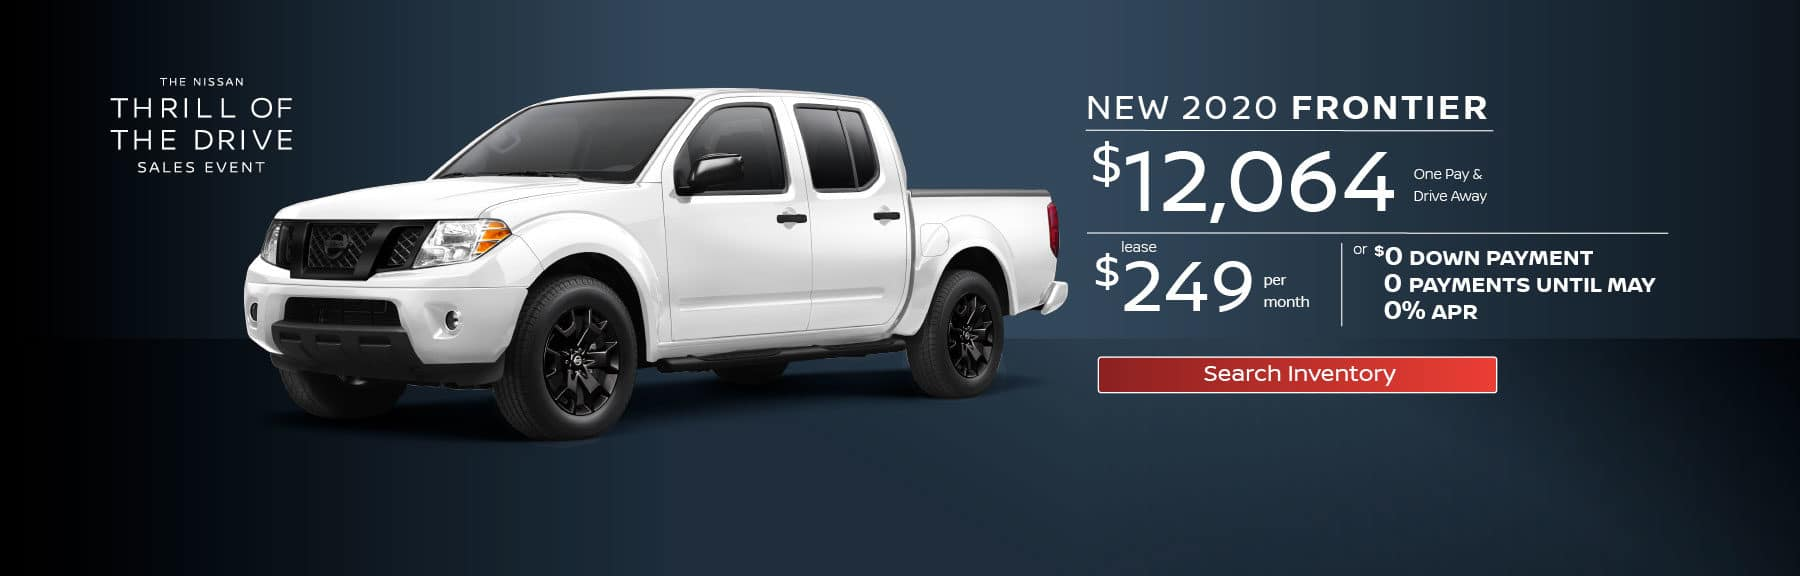 New 2020 Frontier One Pay & Drive Away for $12,064 or $249 a month for 36 months, or $0 Down, 0 Payments Until May, 0% APR